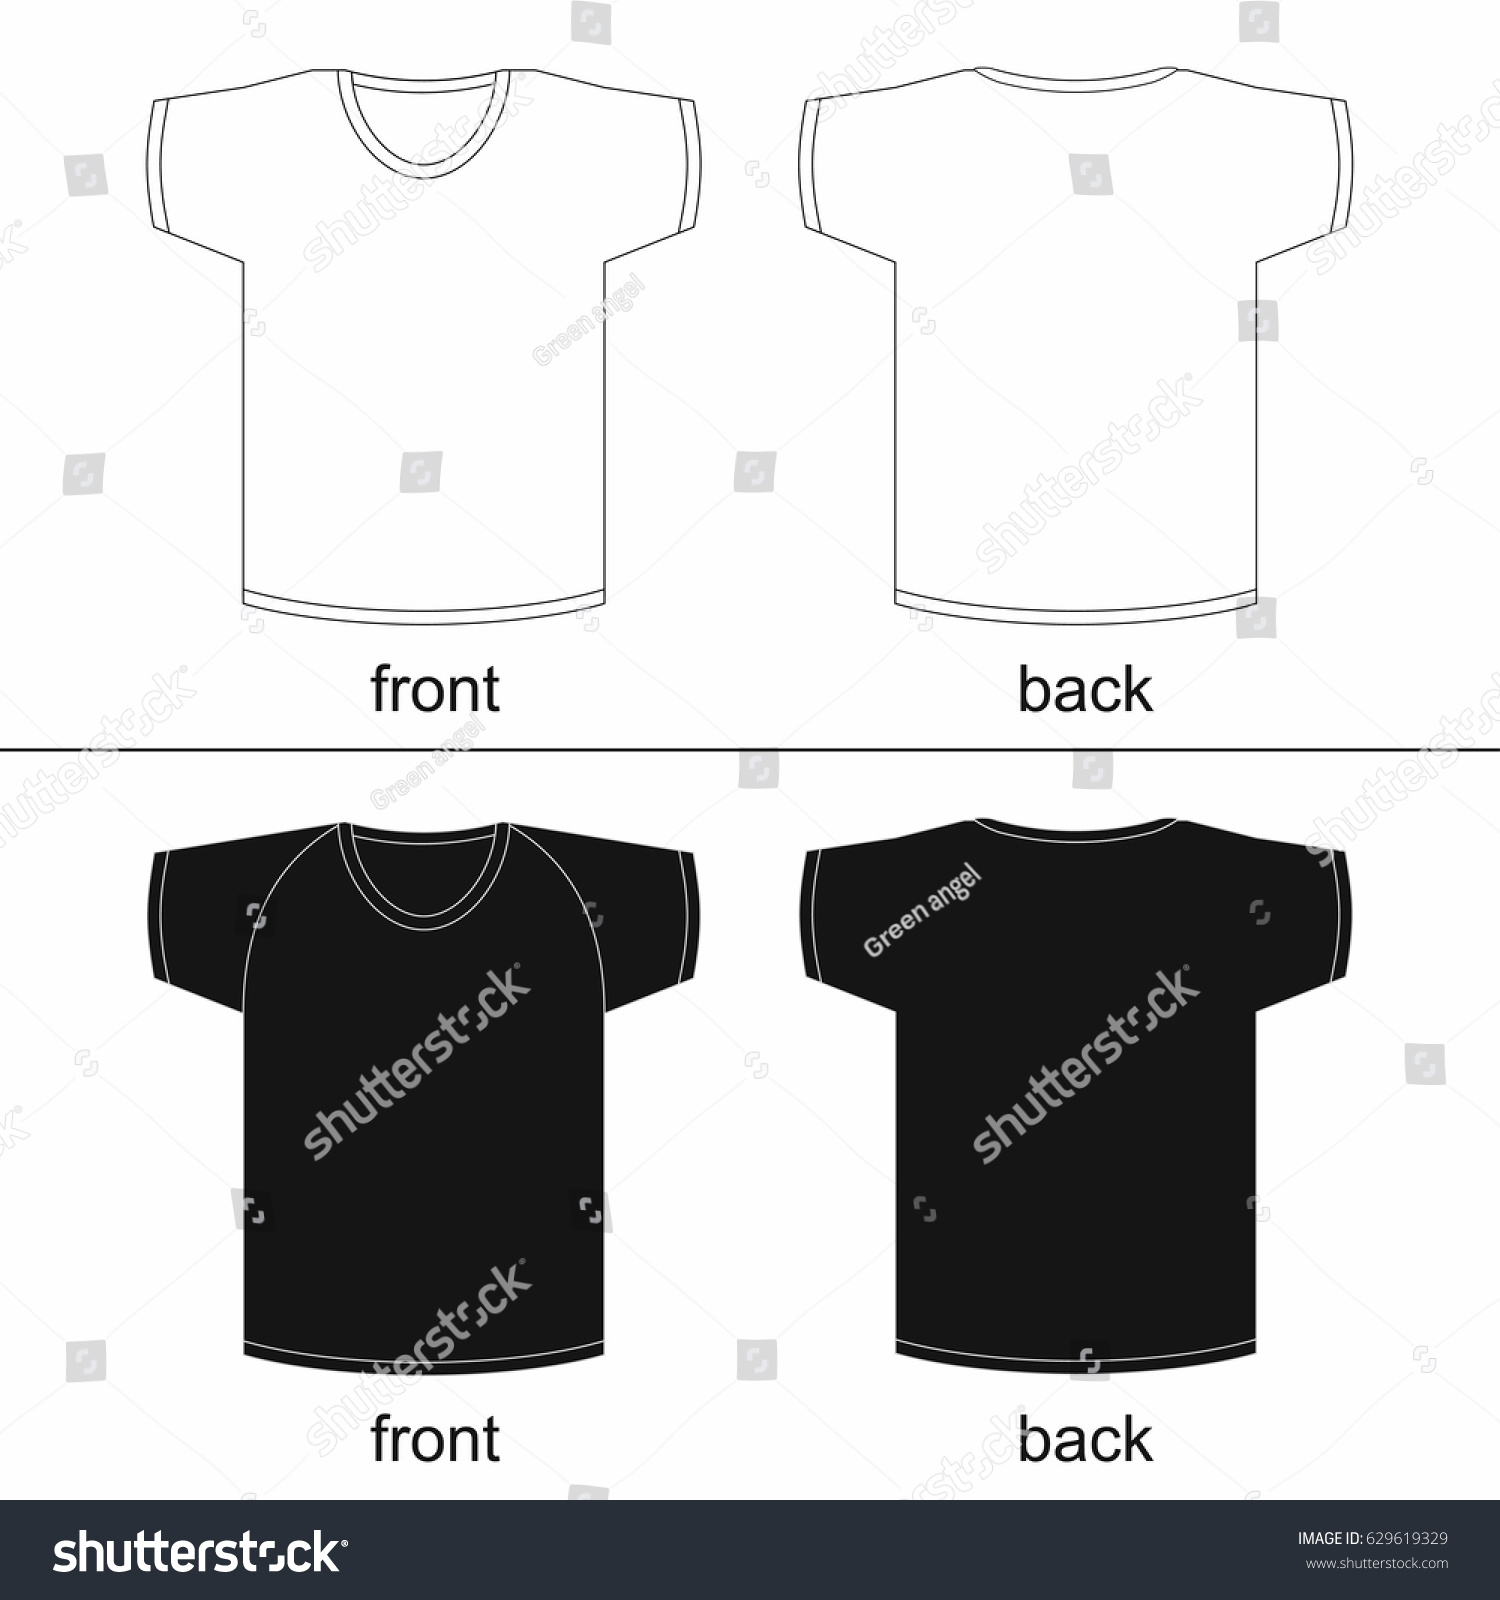 graphic relating to Free Printable T Shirt Template titled T Blouse Template Free of charge Printable AzÉ™rbaycan DillÉ™r Universiteti